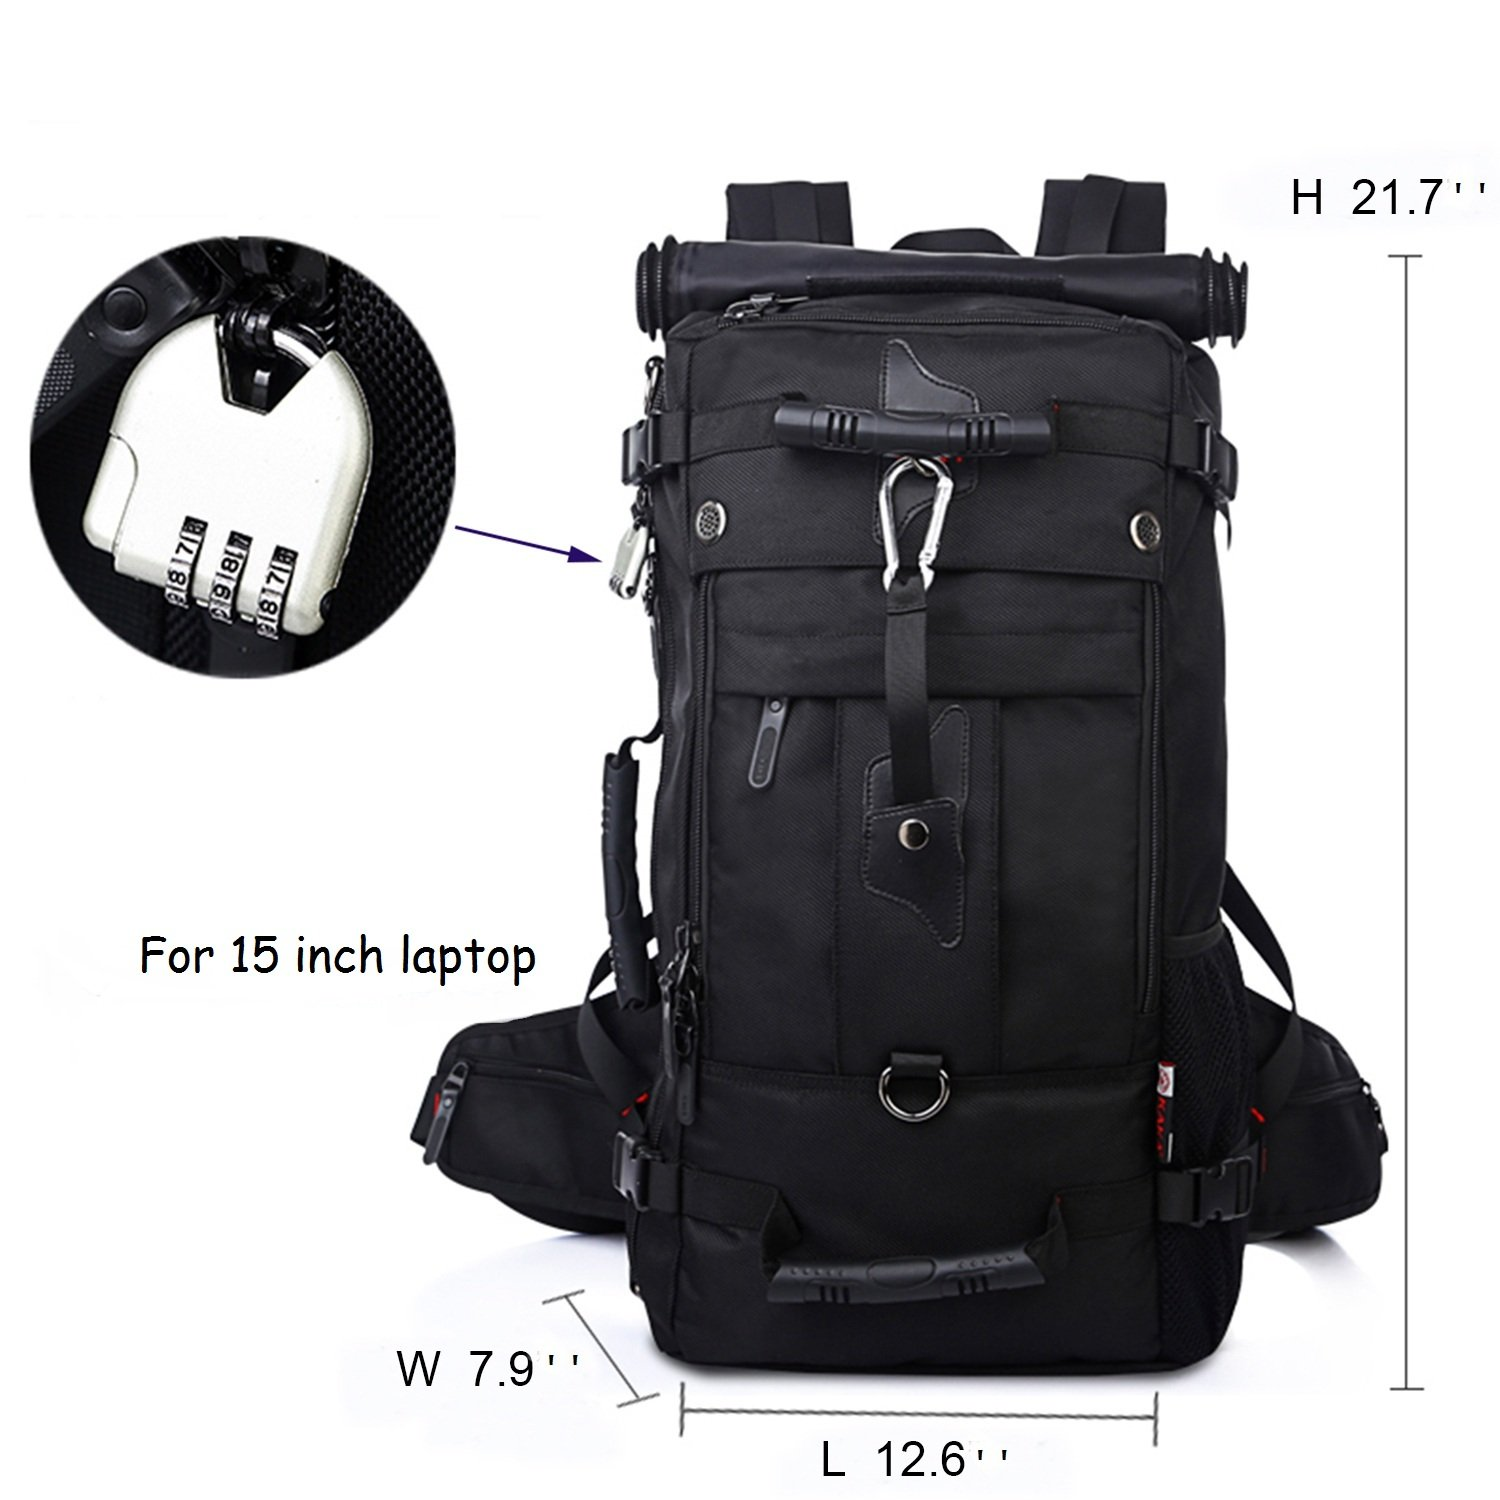 Travel Mountaineering Backpack Climbing Camping Hiking Knapsack Tactical Daypack Weekender Overnight Bag for Men Women